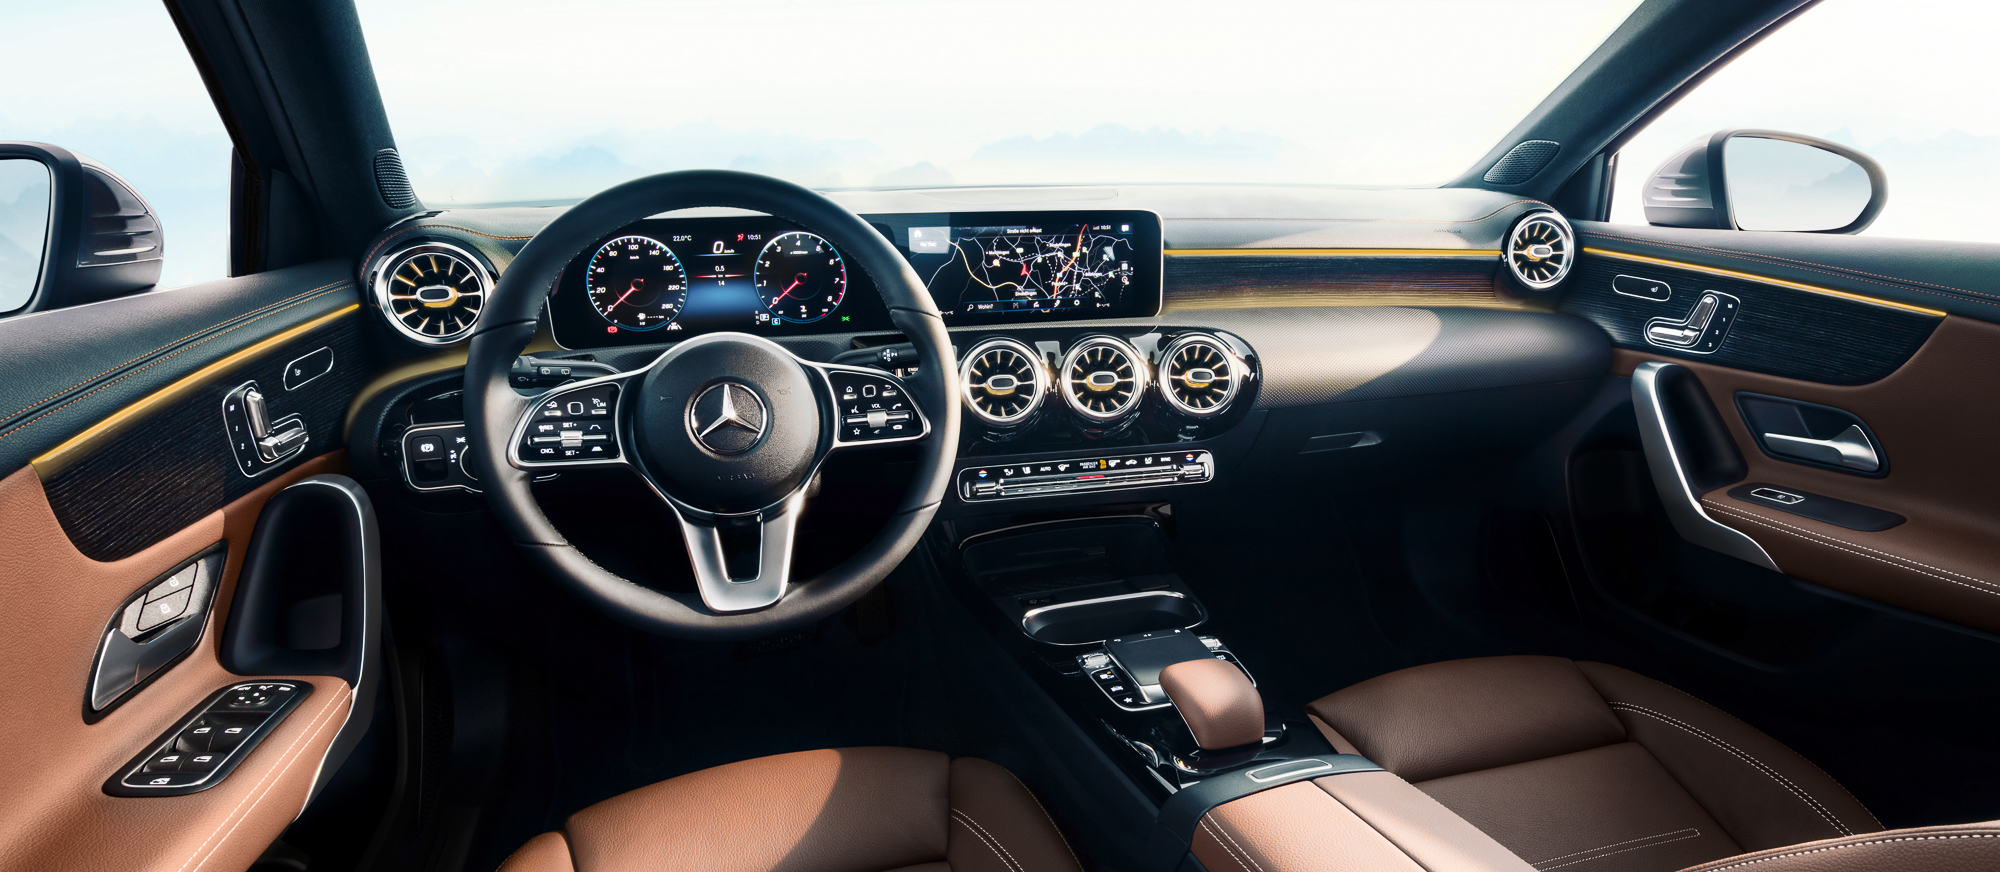 i bims die neue mercedes benz a klasse w177 video rad. Black Bedroom Furniture Sets. Home Design Ideas